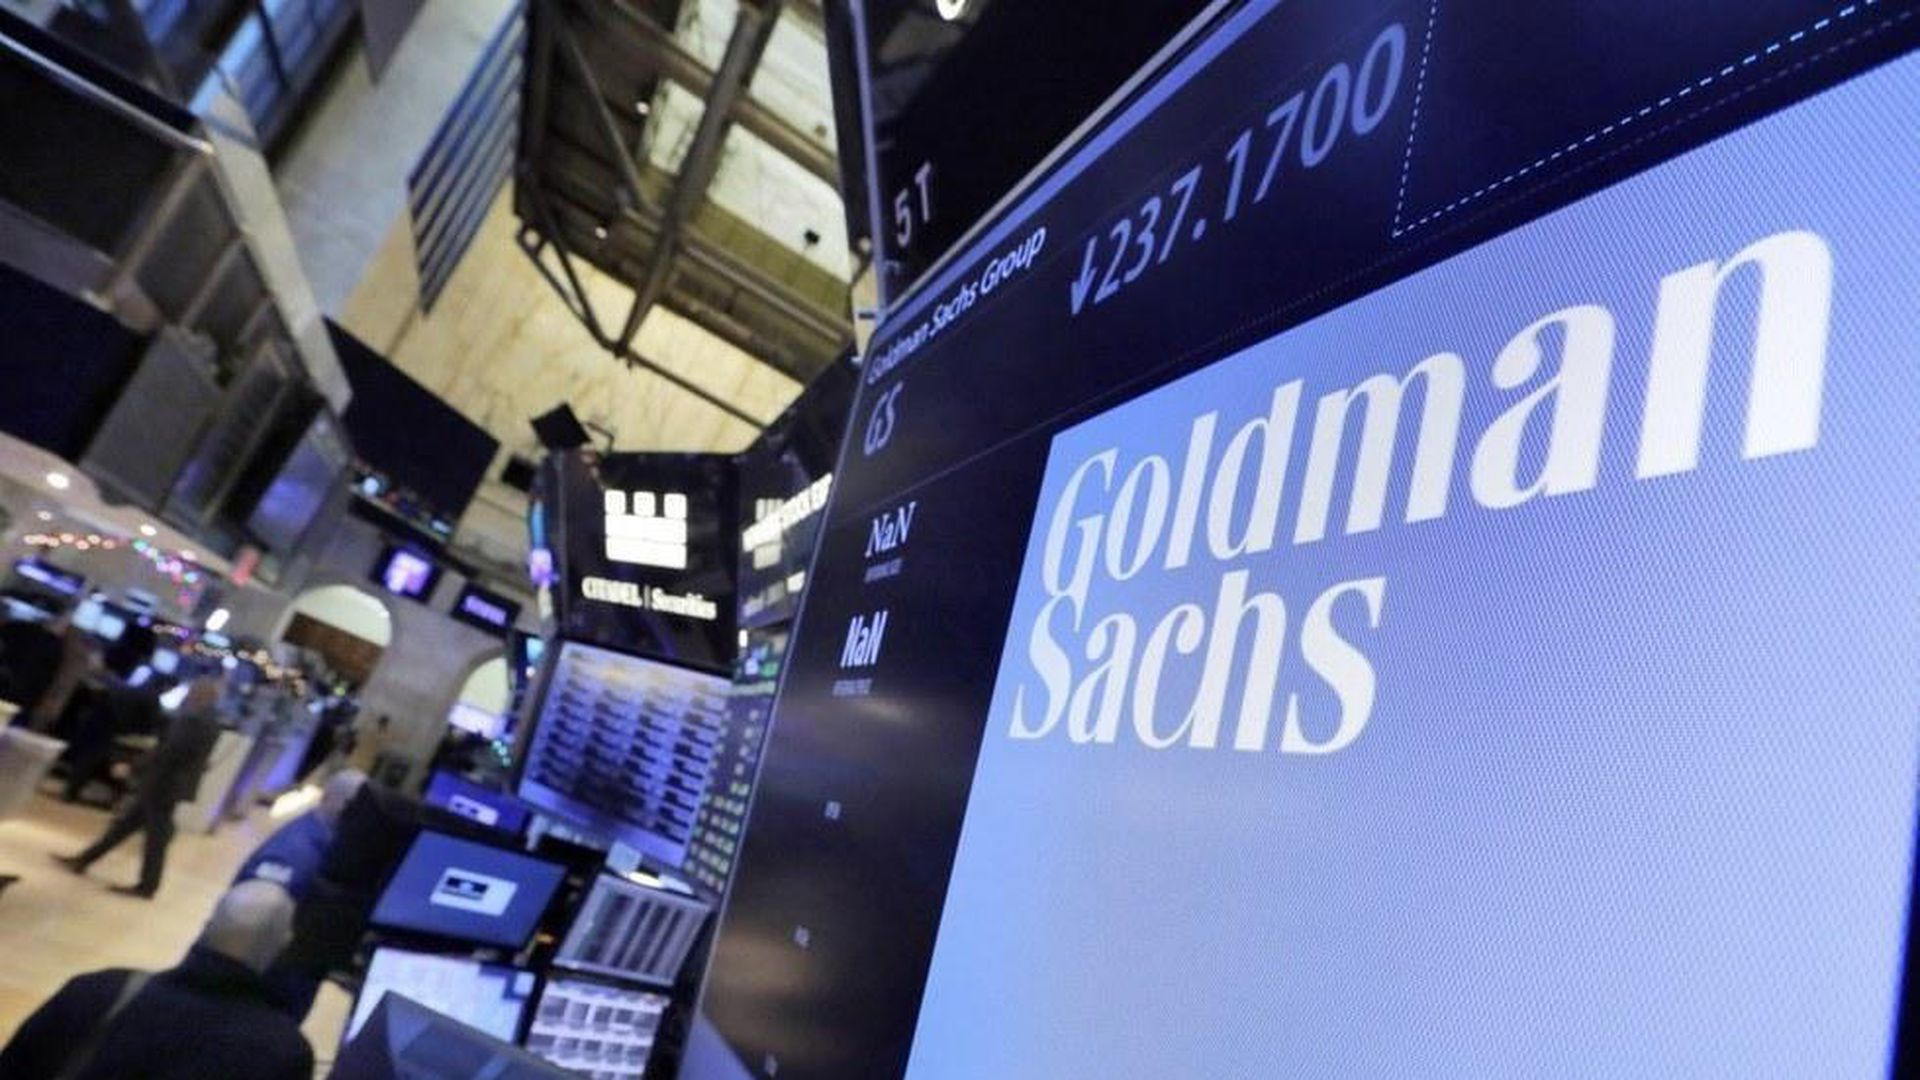 private equity and goldman sachs holdings Learn up to the minute information about goldman sachs private equity partners 2004 offshore holdings, lp - including connections with people/companies, sec filings (including ownership and fundraising), contact information.